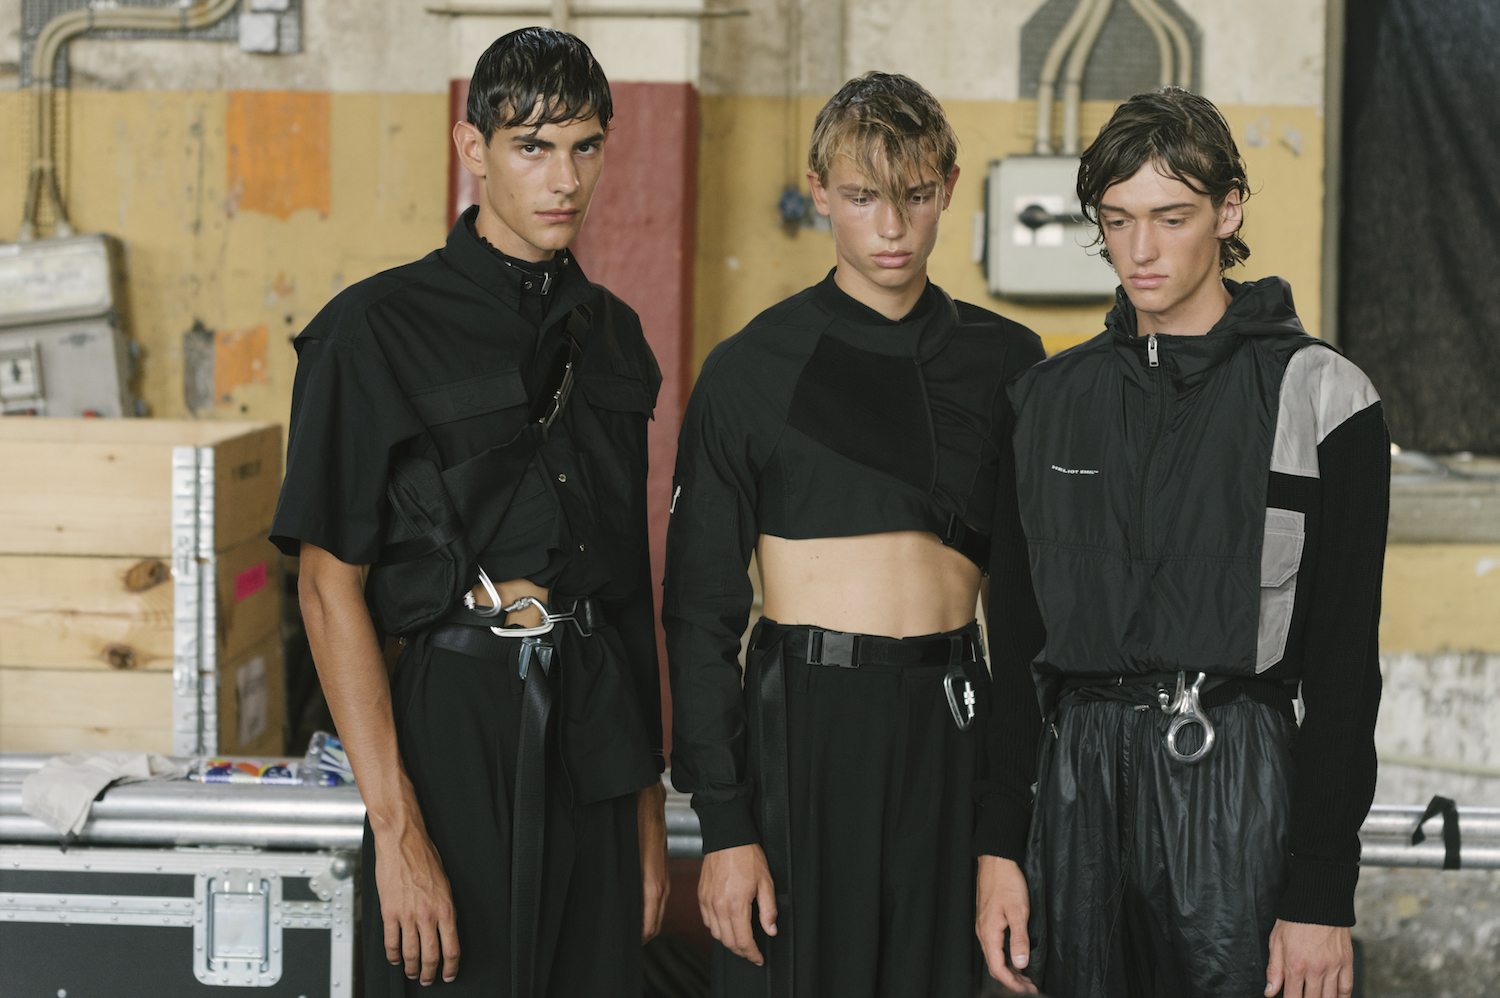 CPHFW: Backstage at HELIOT EMIL SS19 Show